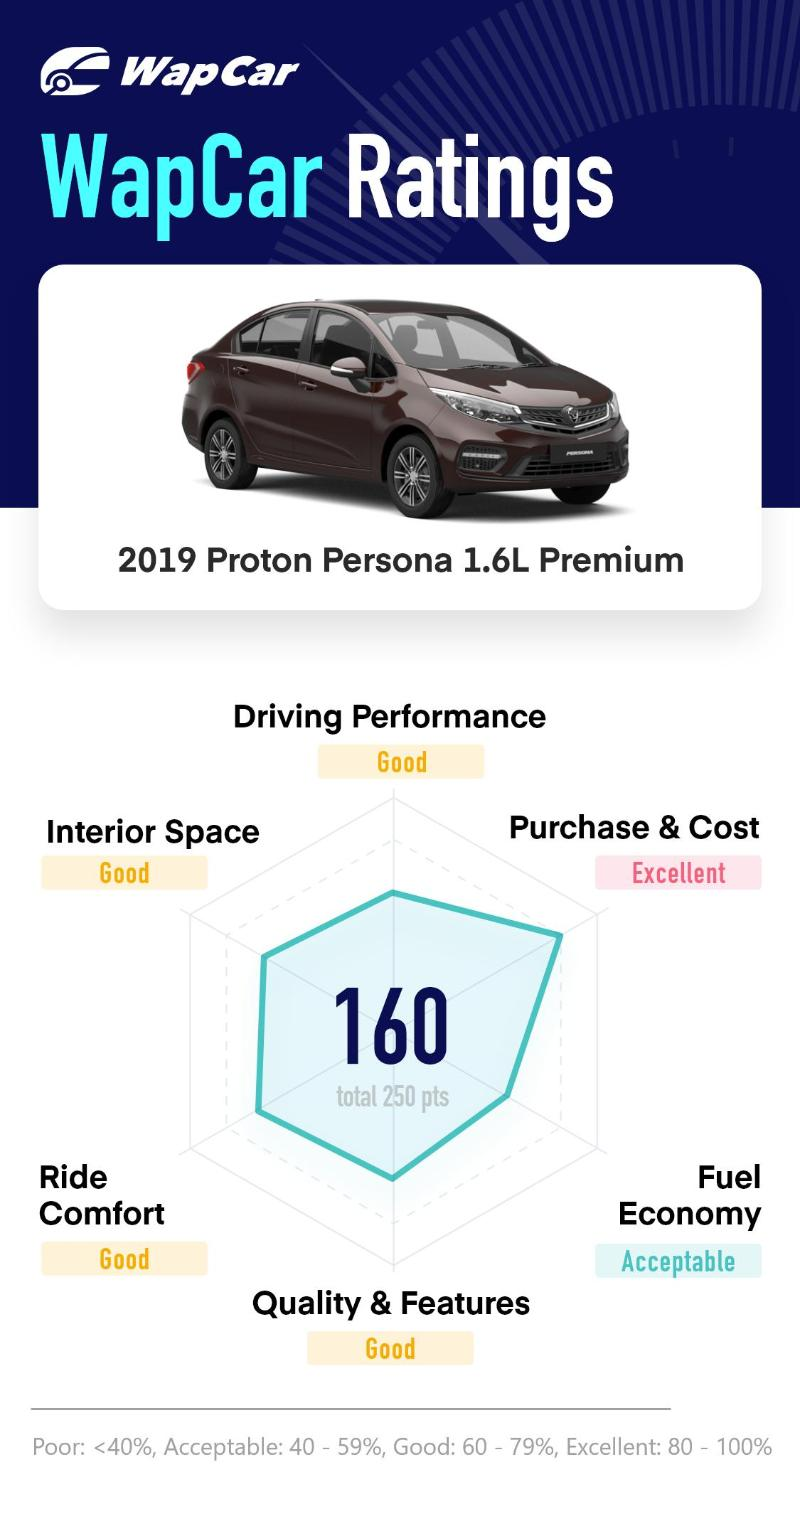 Ratings: 2019 Proton Persona 1.6L Premium - Excellent score in purchase and cost 02